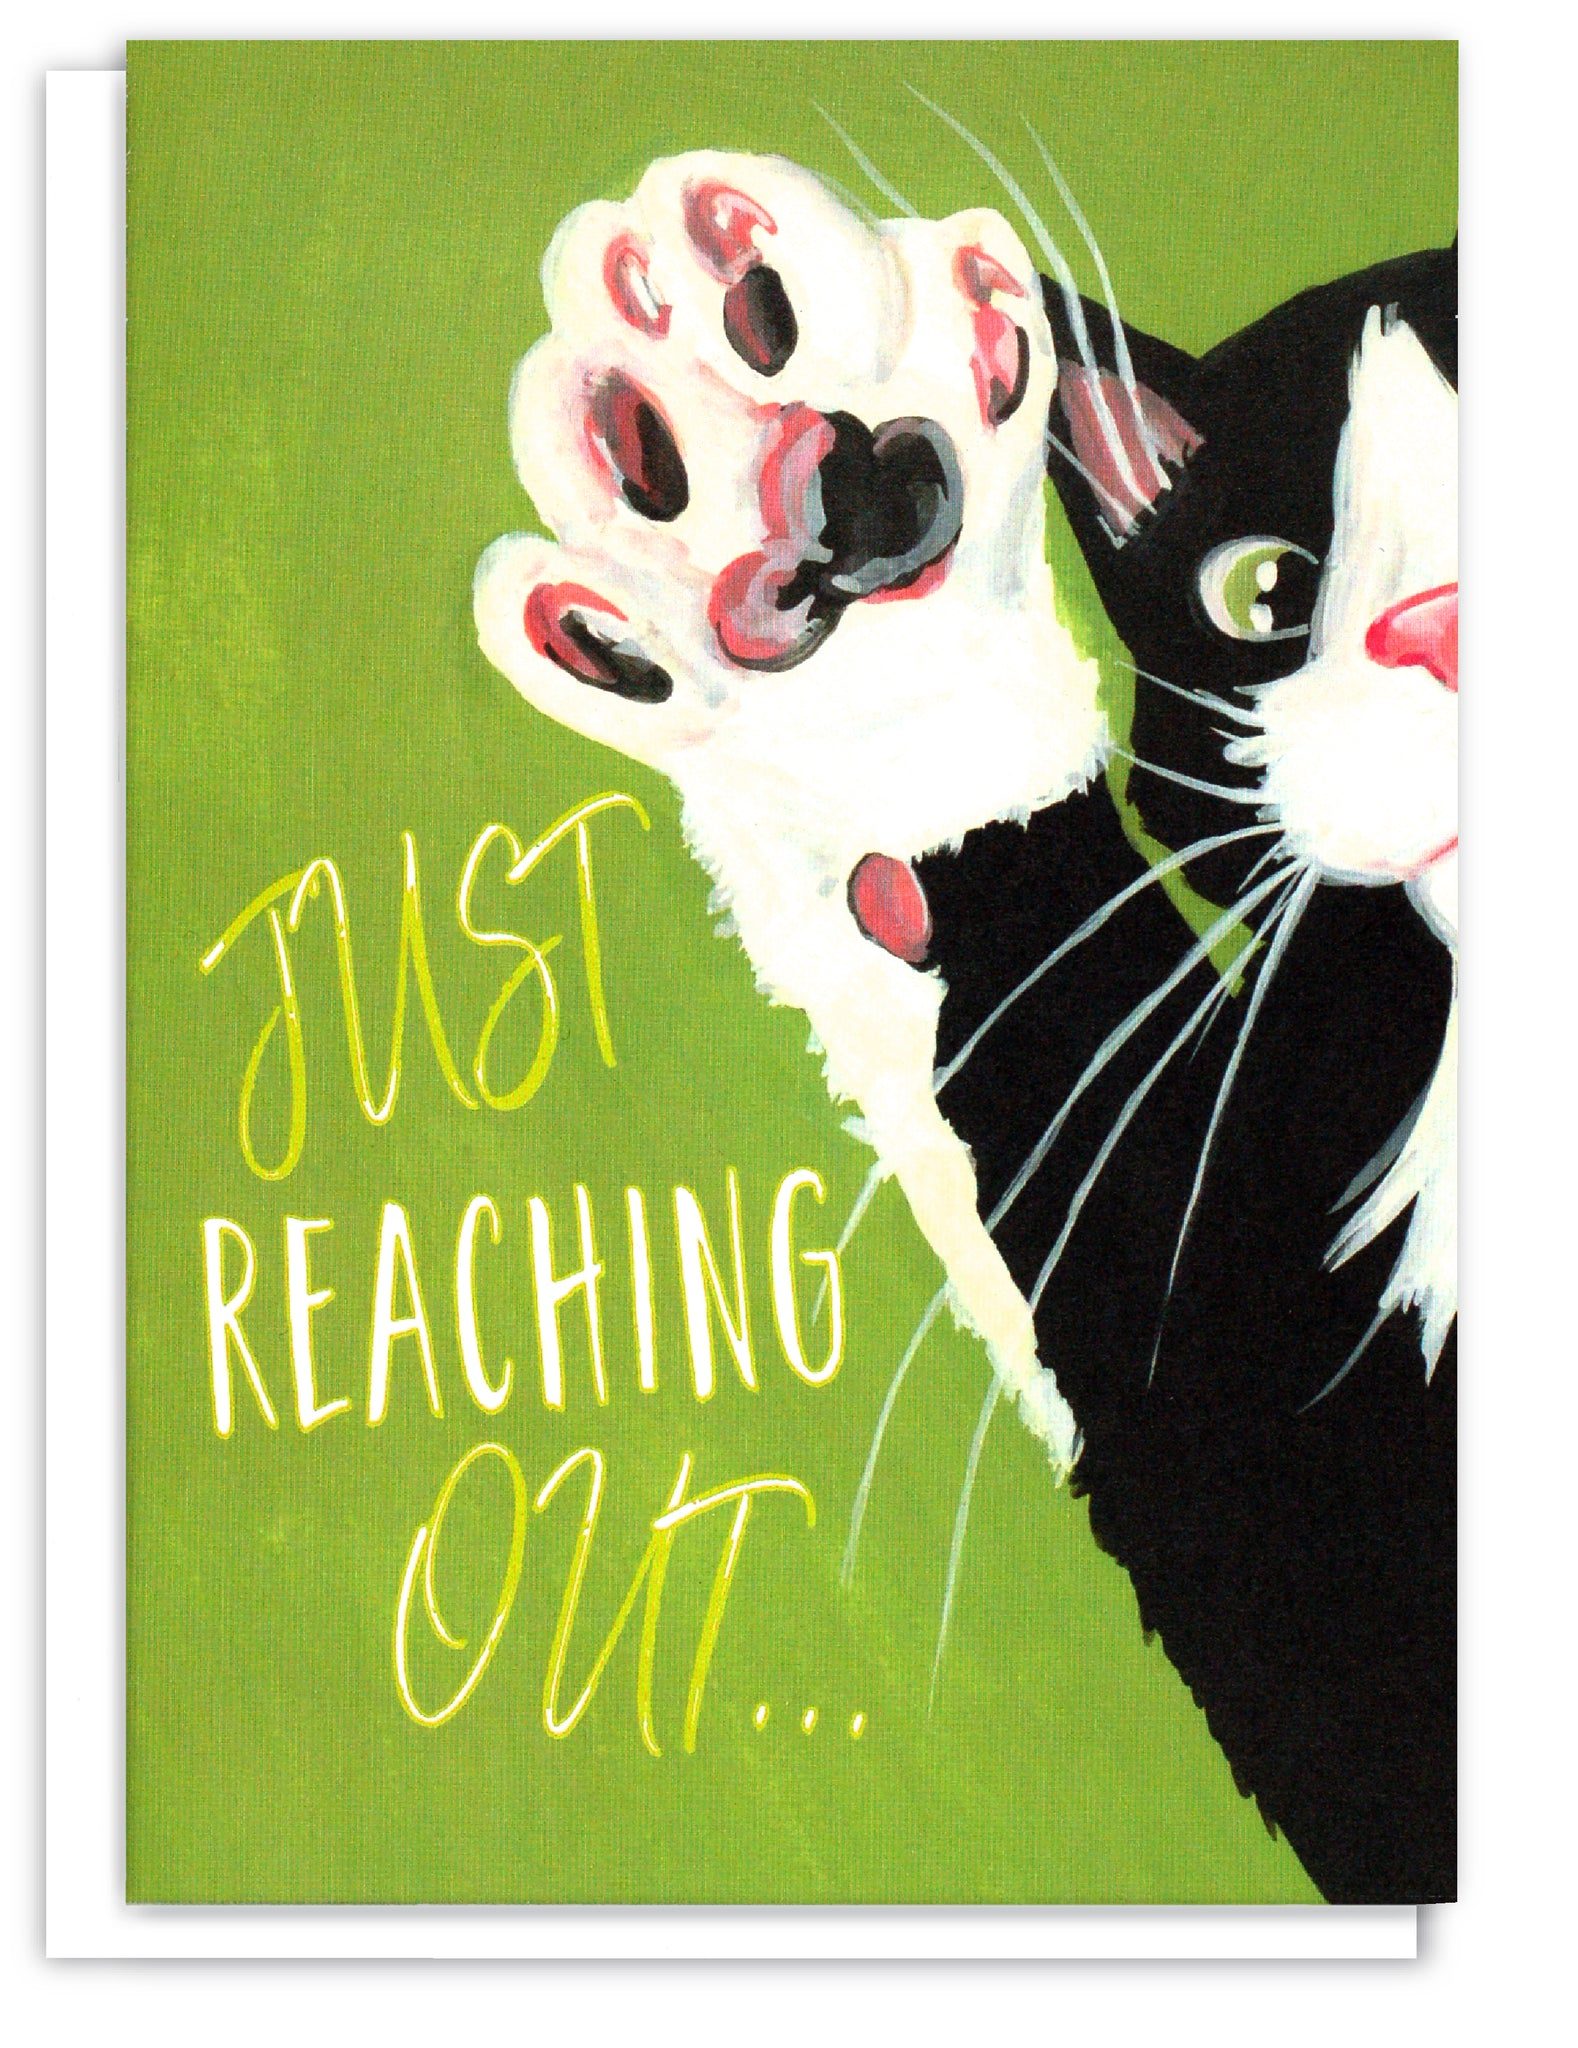 Greeting card of a Tuxedo cat paw reaching out